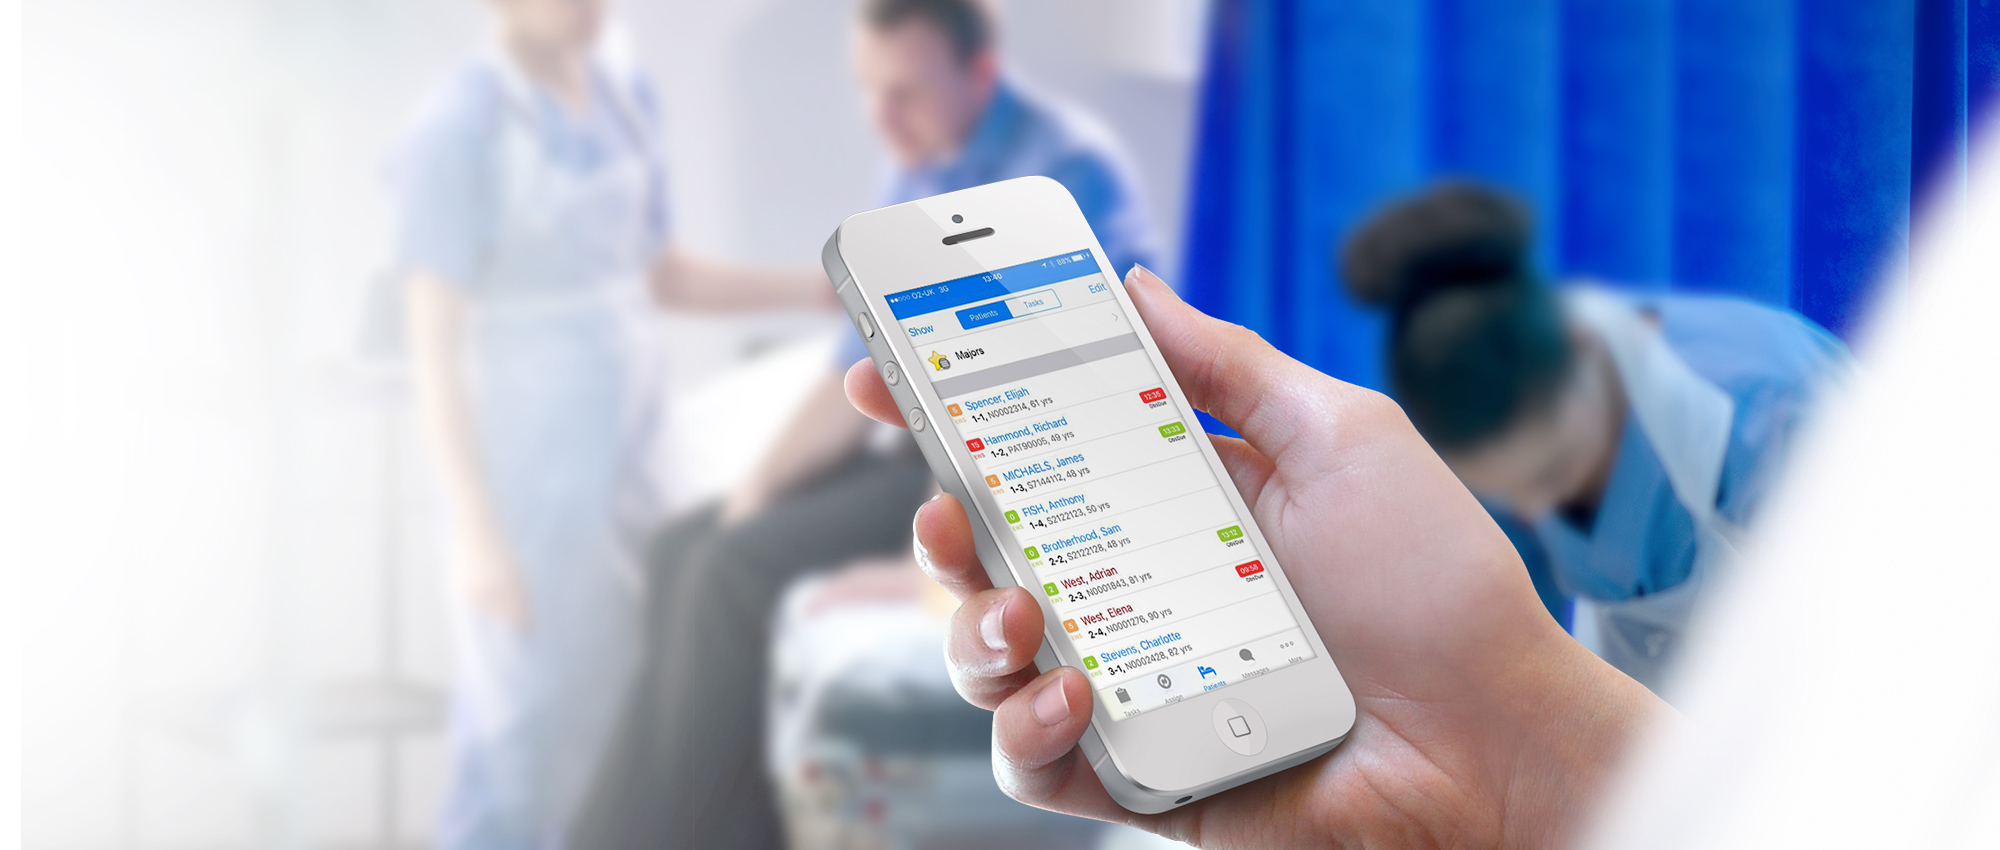 Nervecentre is a Mobile Clinical Workflow Platform, designed for clinicians, in close partnership with over 30 NHS Trusts